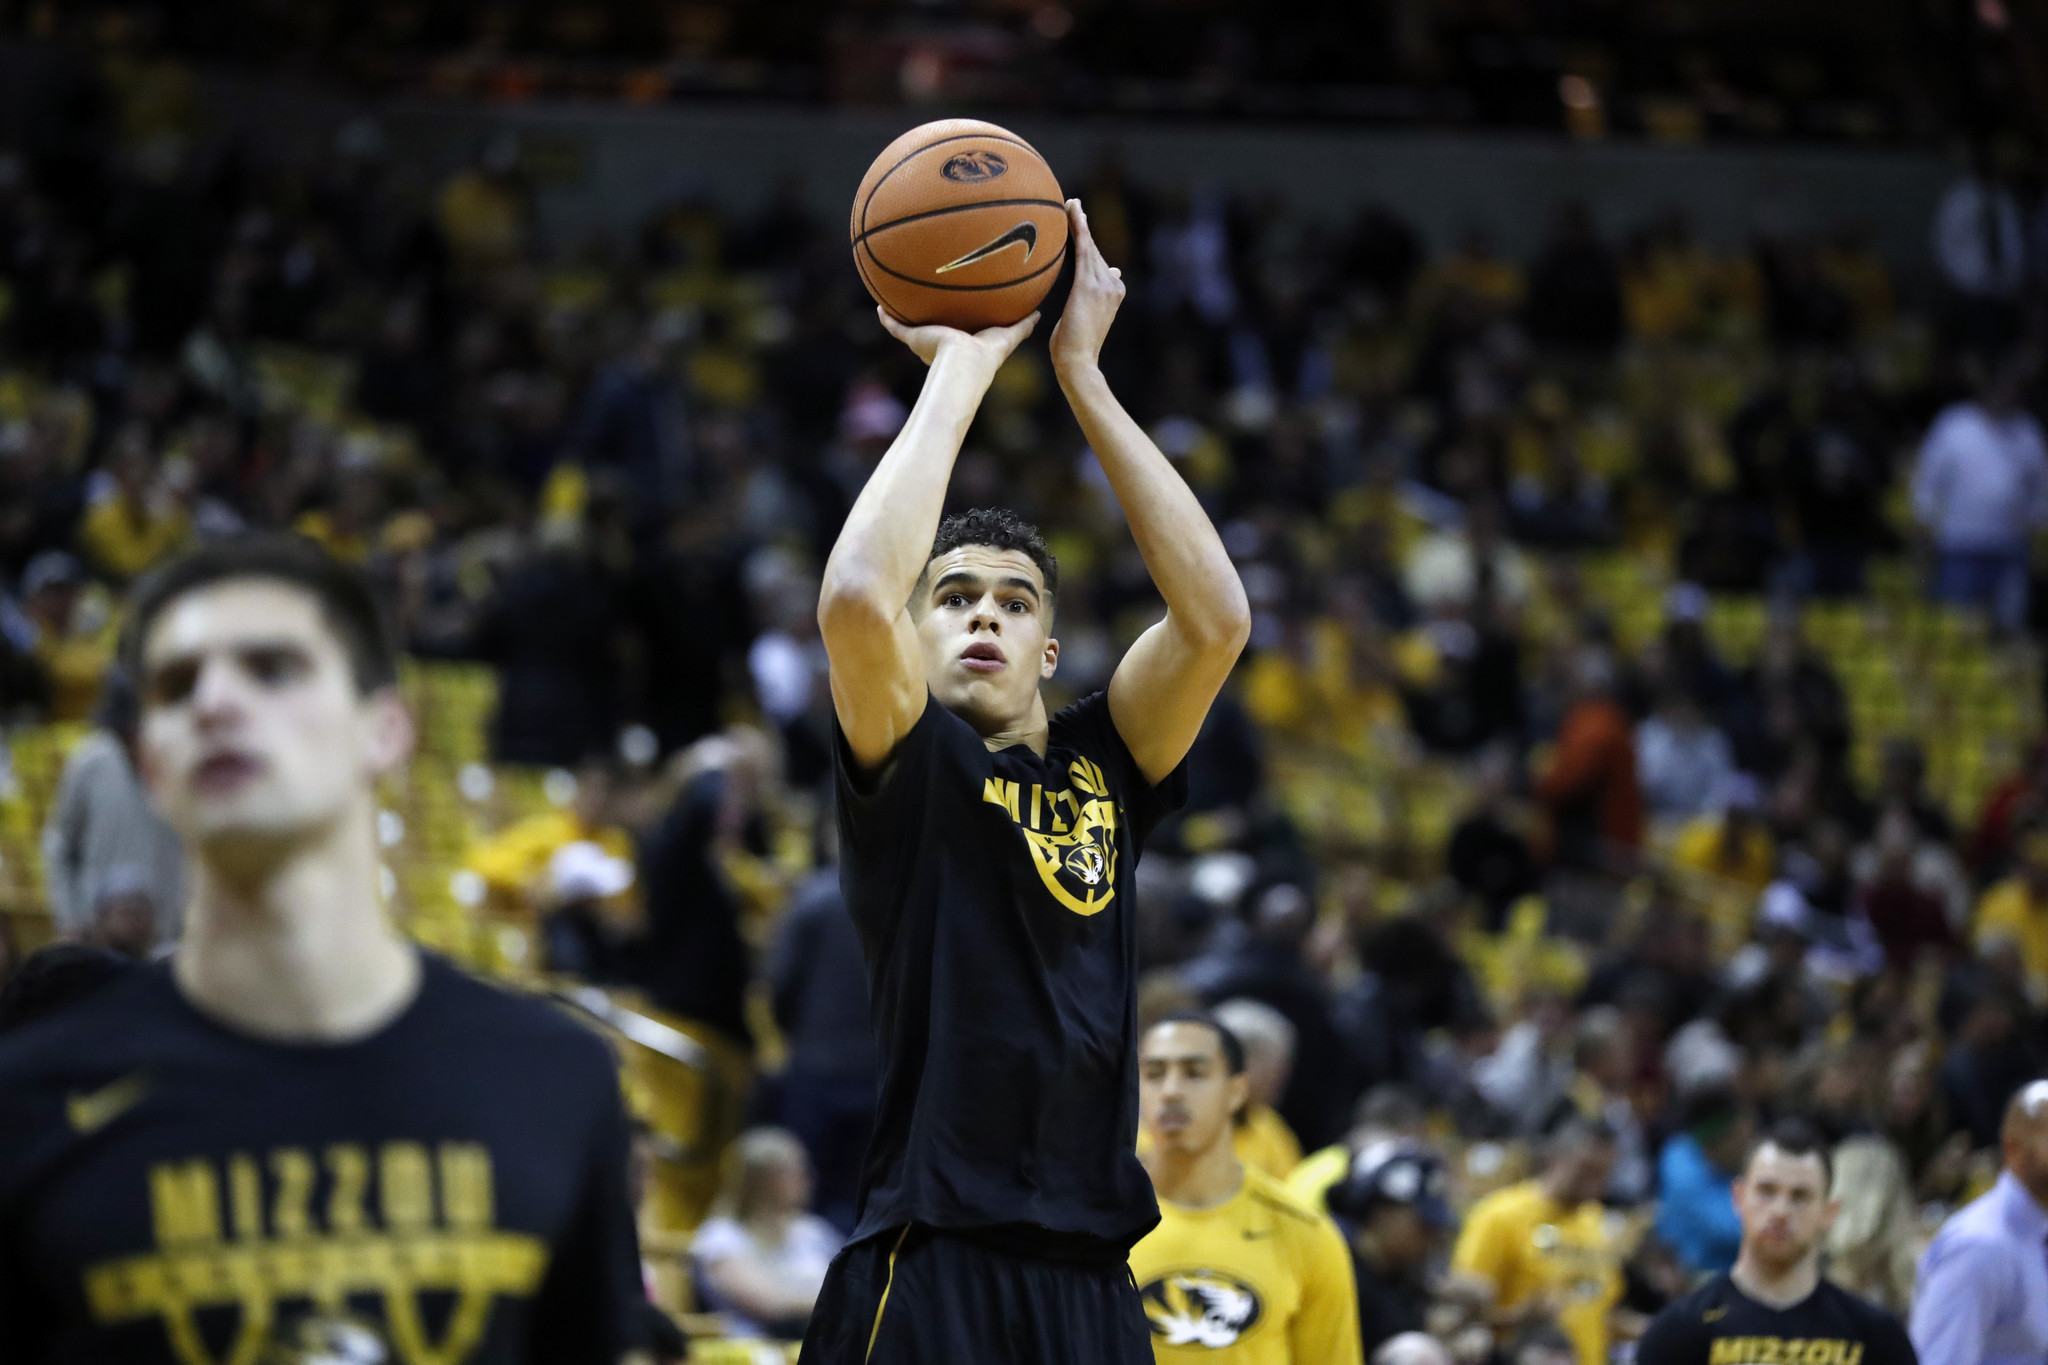 Missouri's Michael Porter Jr. out for the season after back surgery - Chicago Tribune